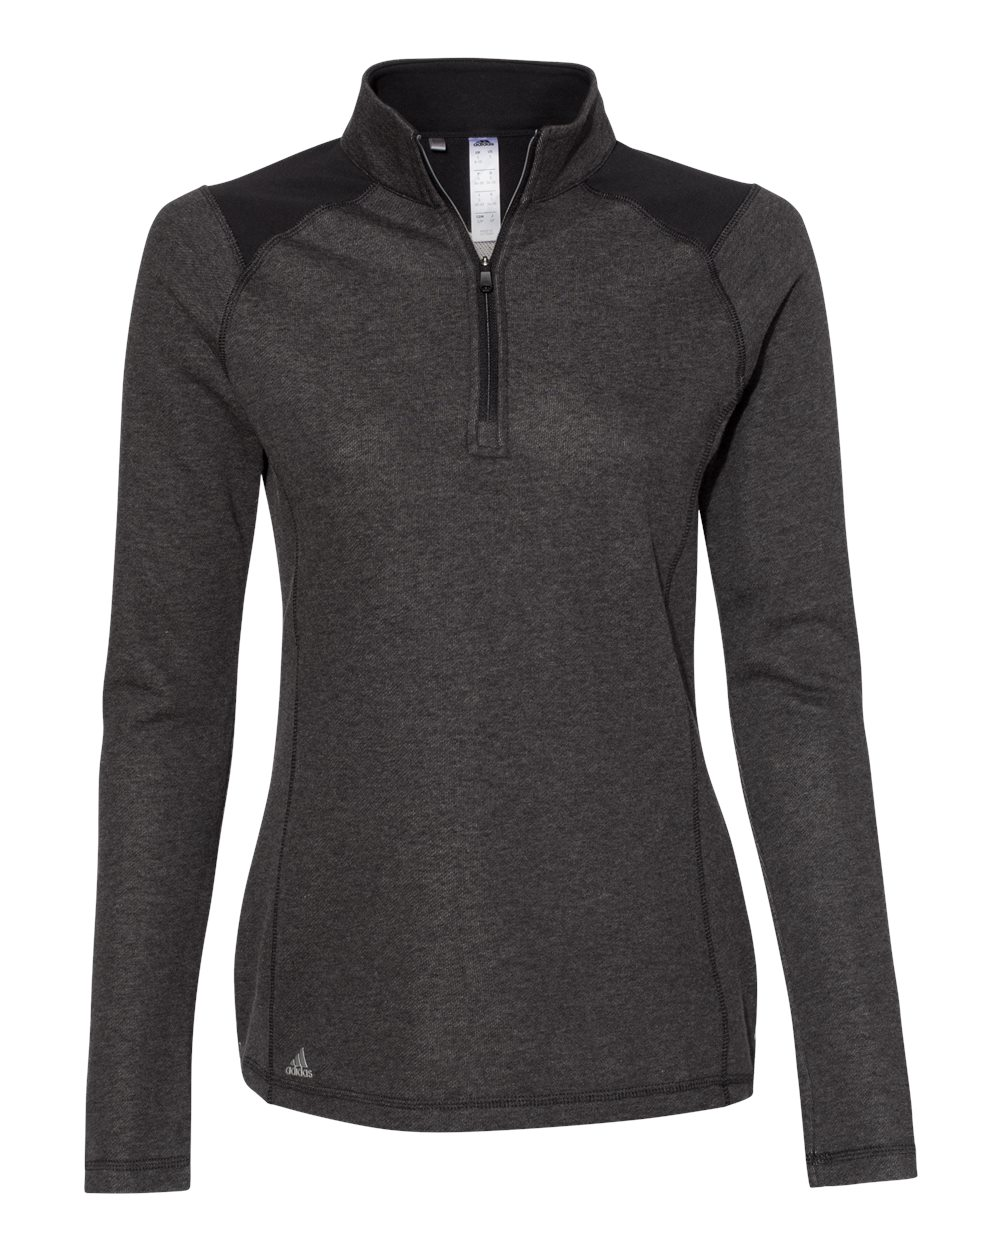 Adidas A464 - Women's Heathered Quarter Zip Pullover with Colorblocked Shoulders